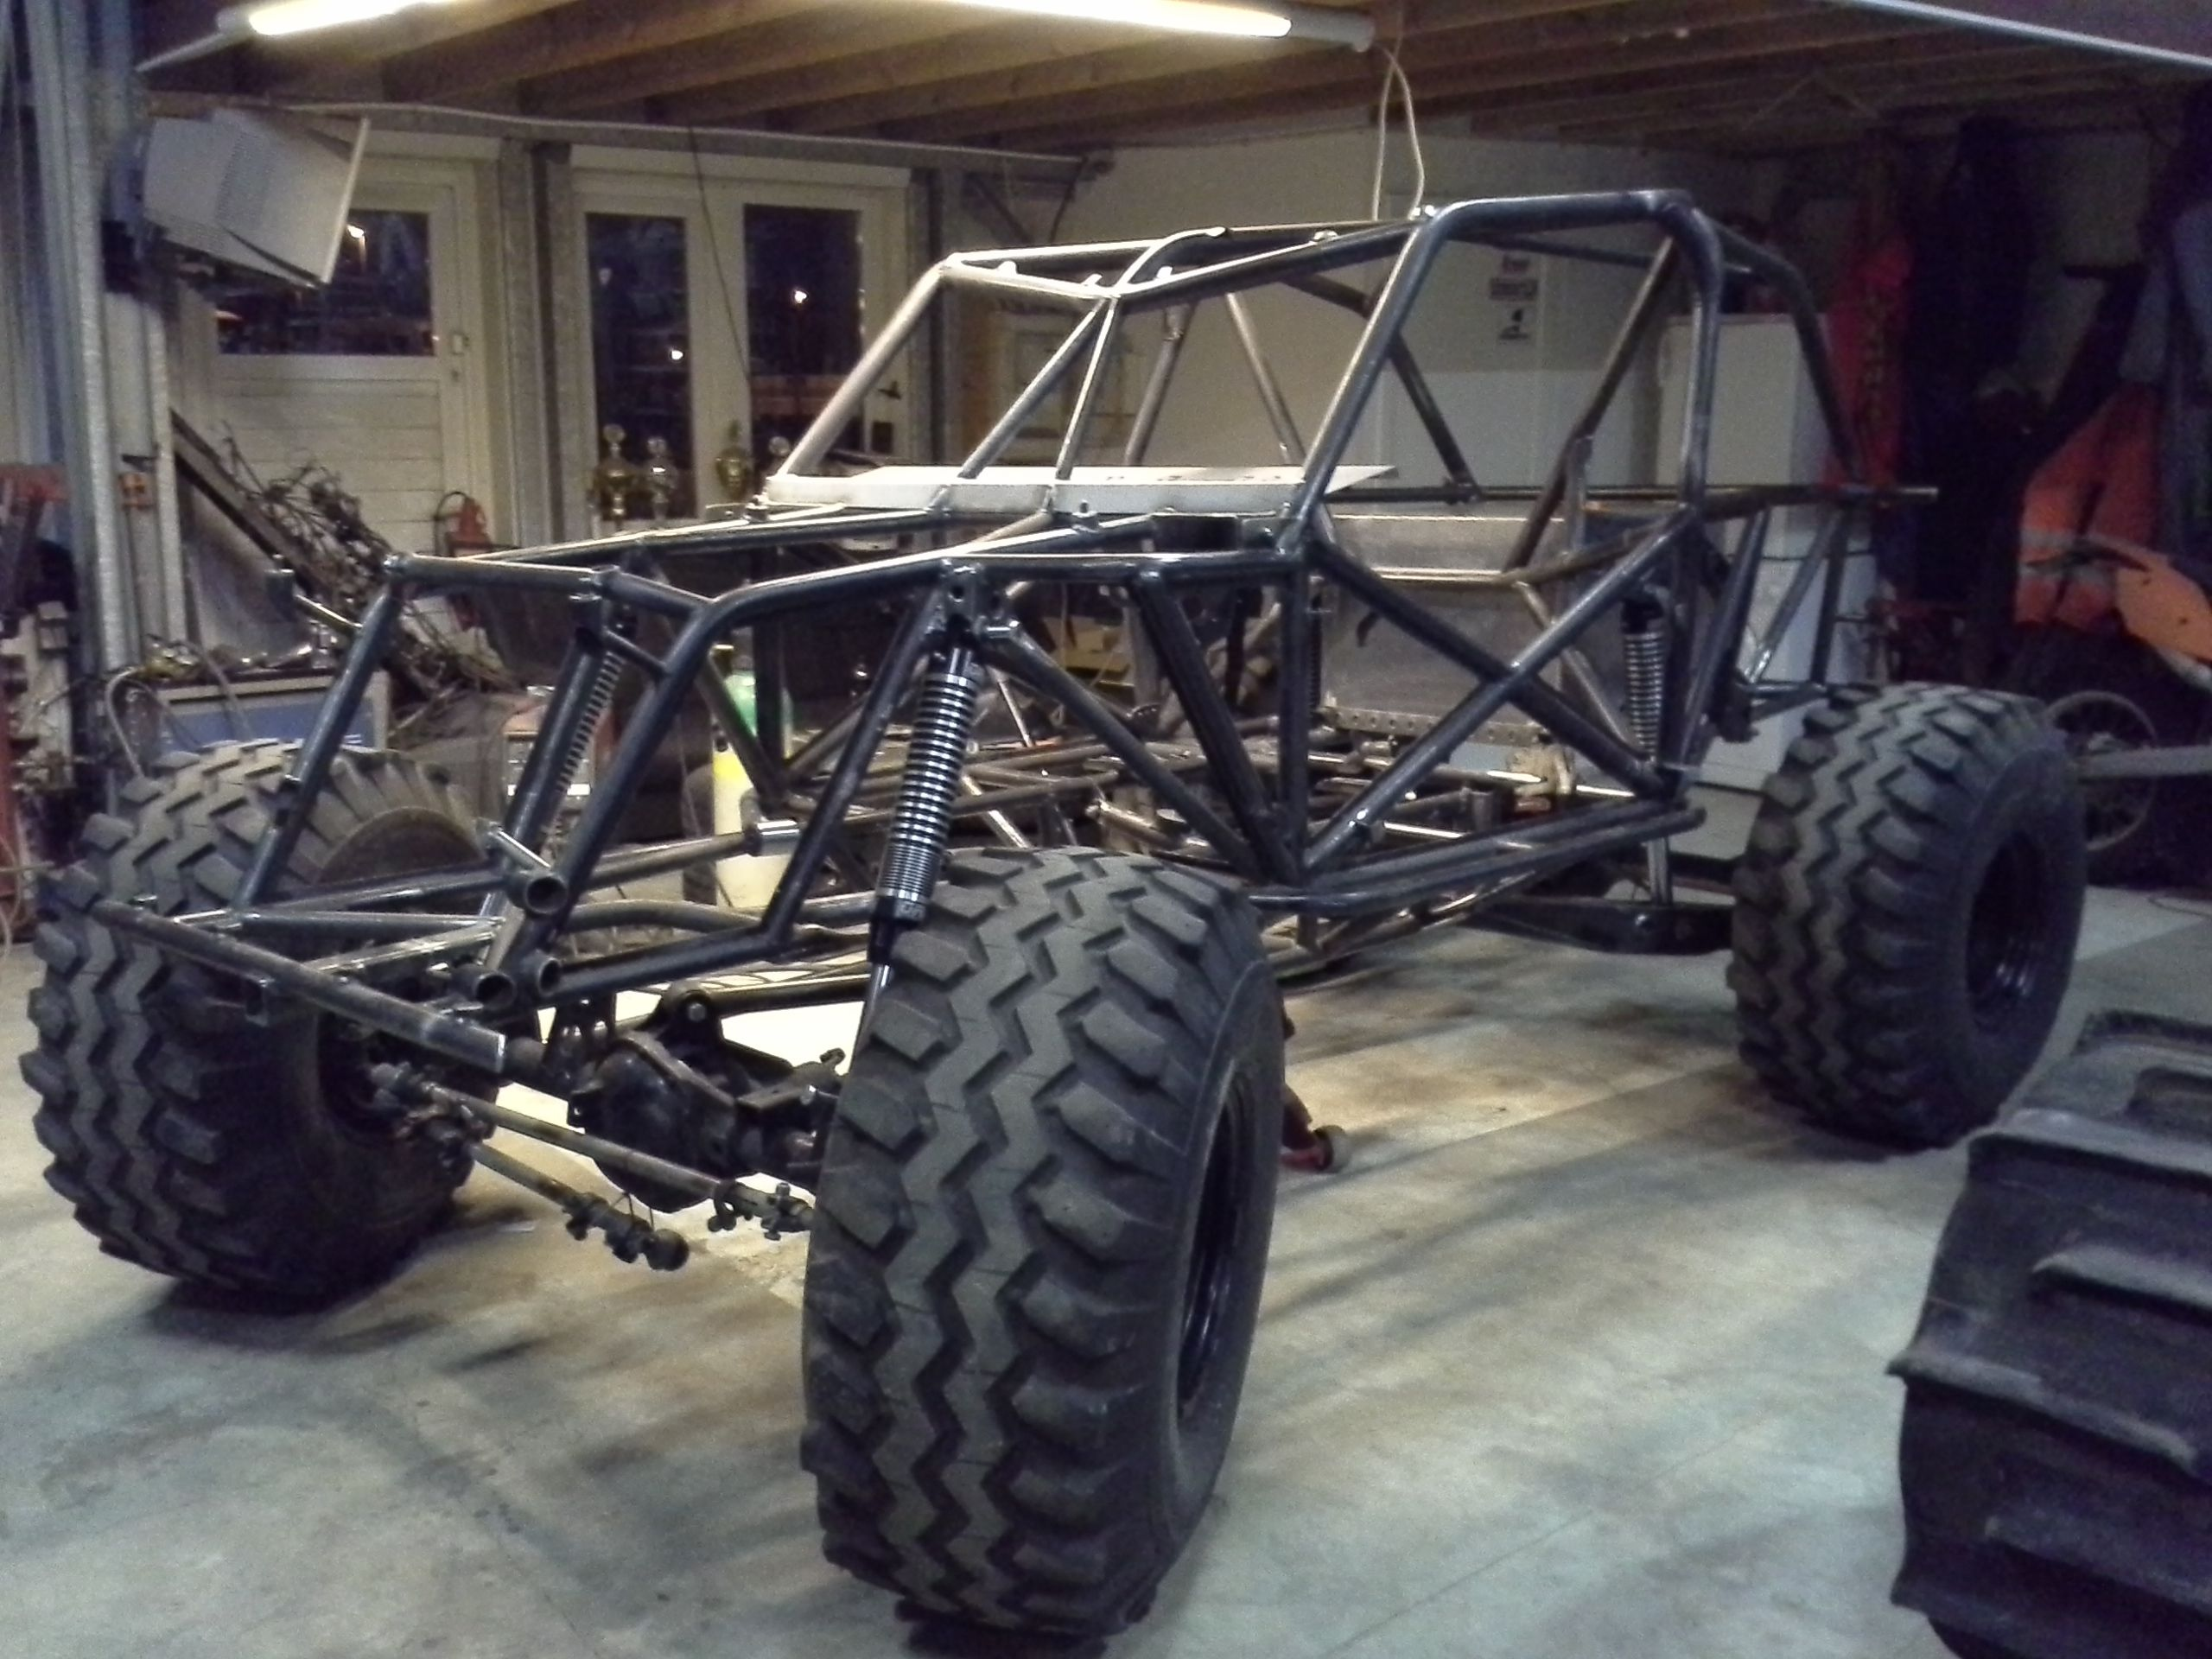 ride height | Sindri Bronco buggy project | Monster trucks